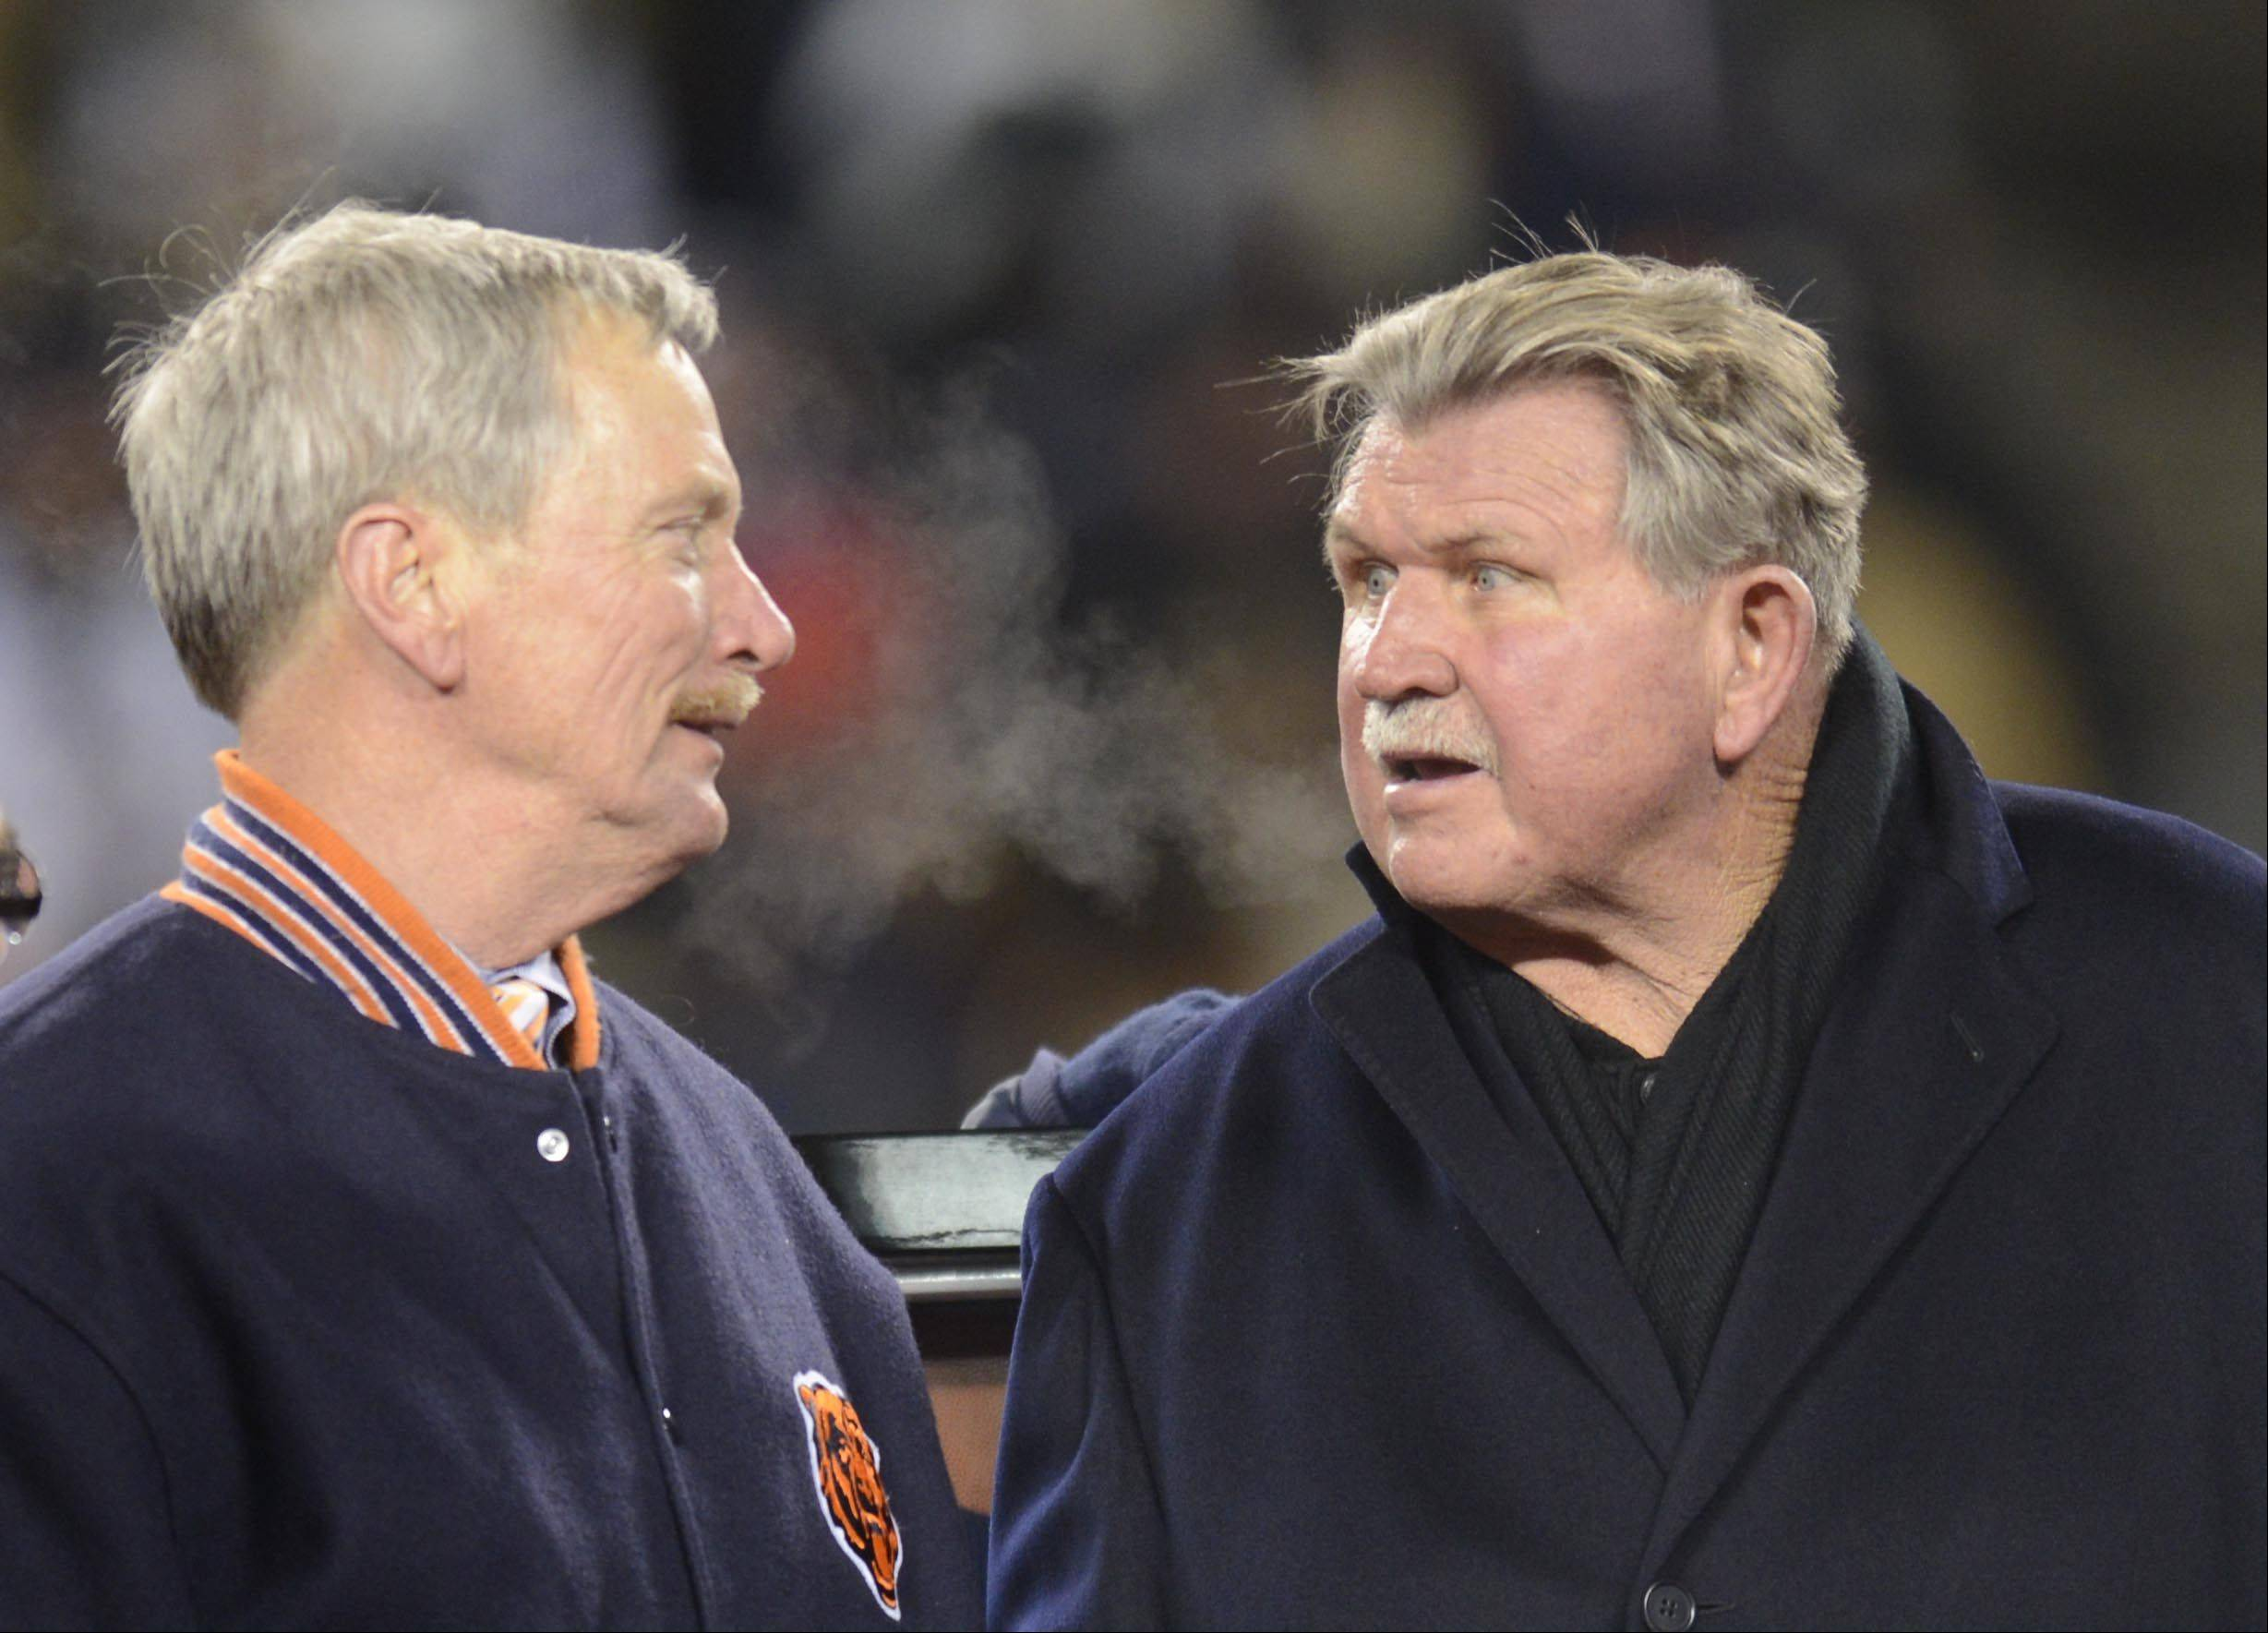 Former Chicago Bears head coach Mike Ditka talks with George McCaskey, Chairman of the Board of the chicago Bears.